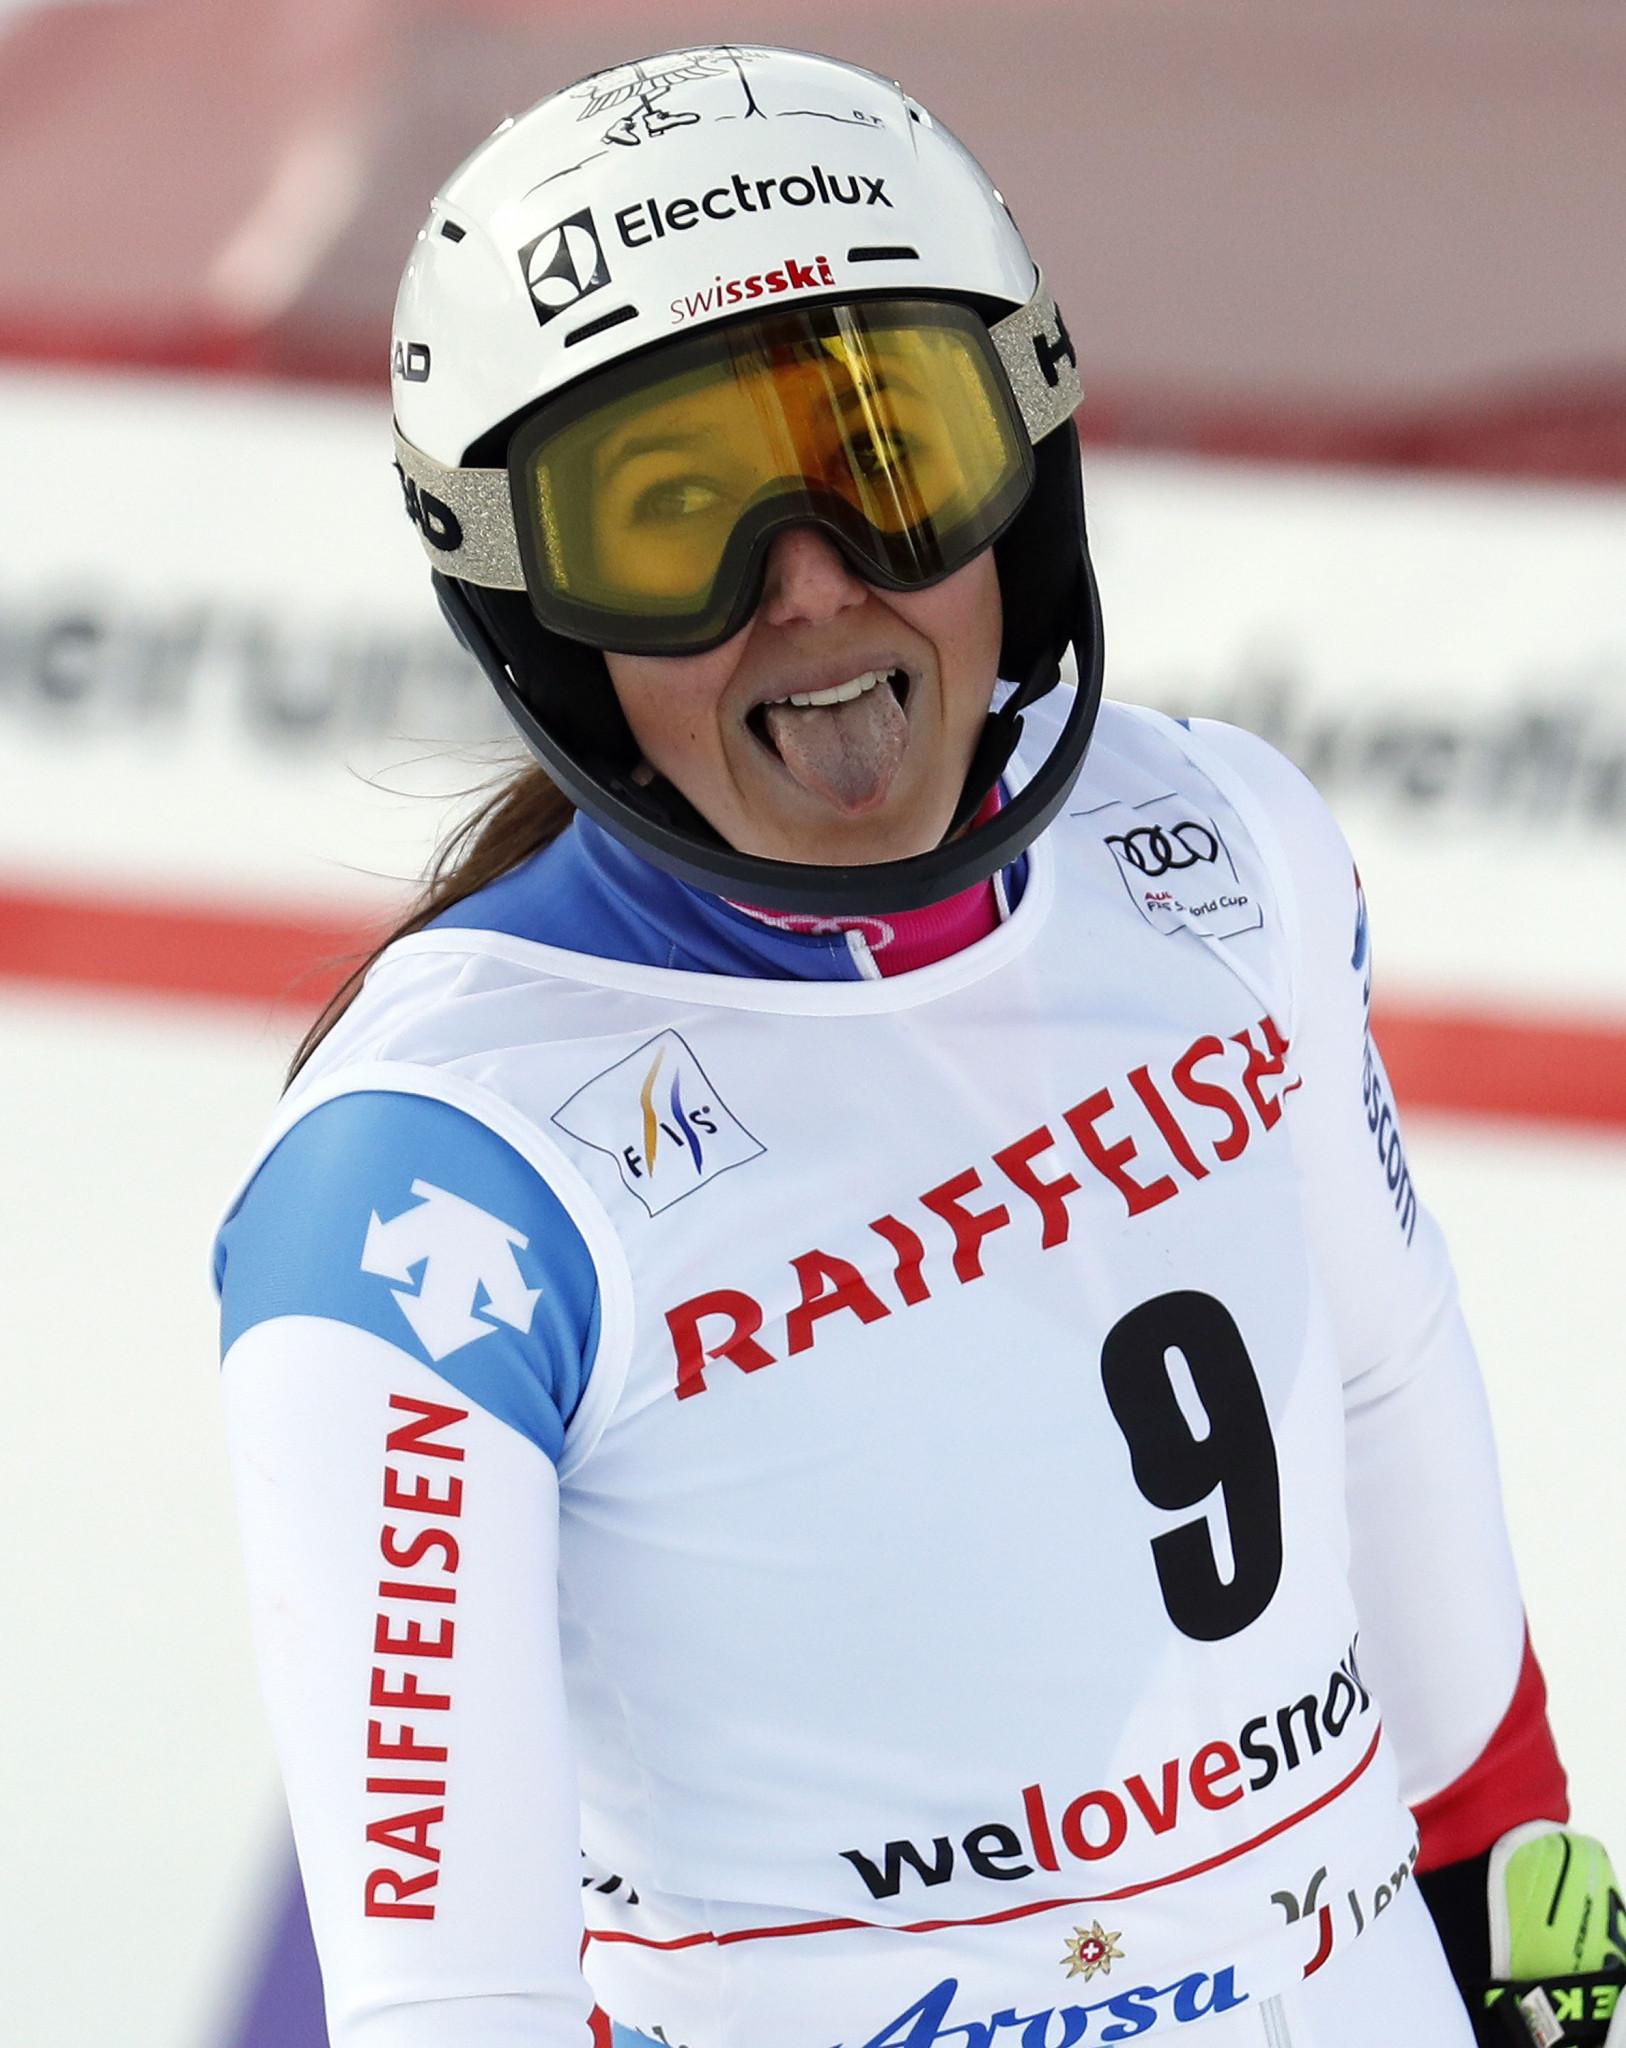 Holdener's long wait for FIS Alpine World Cup win ends in front of home crowd at Lenzerheide